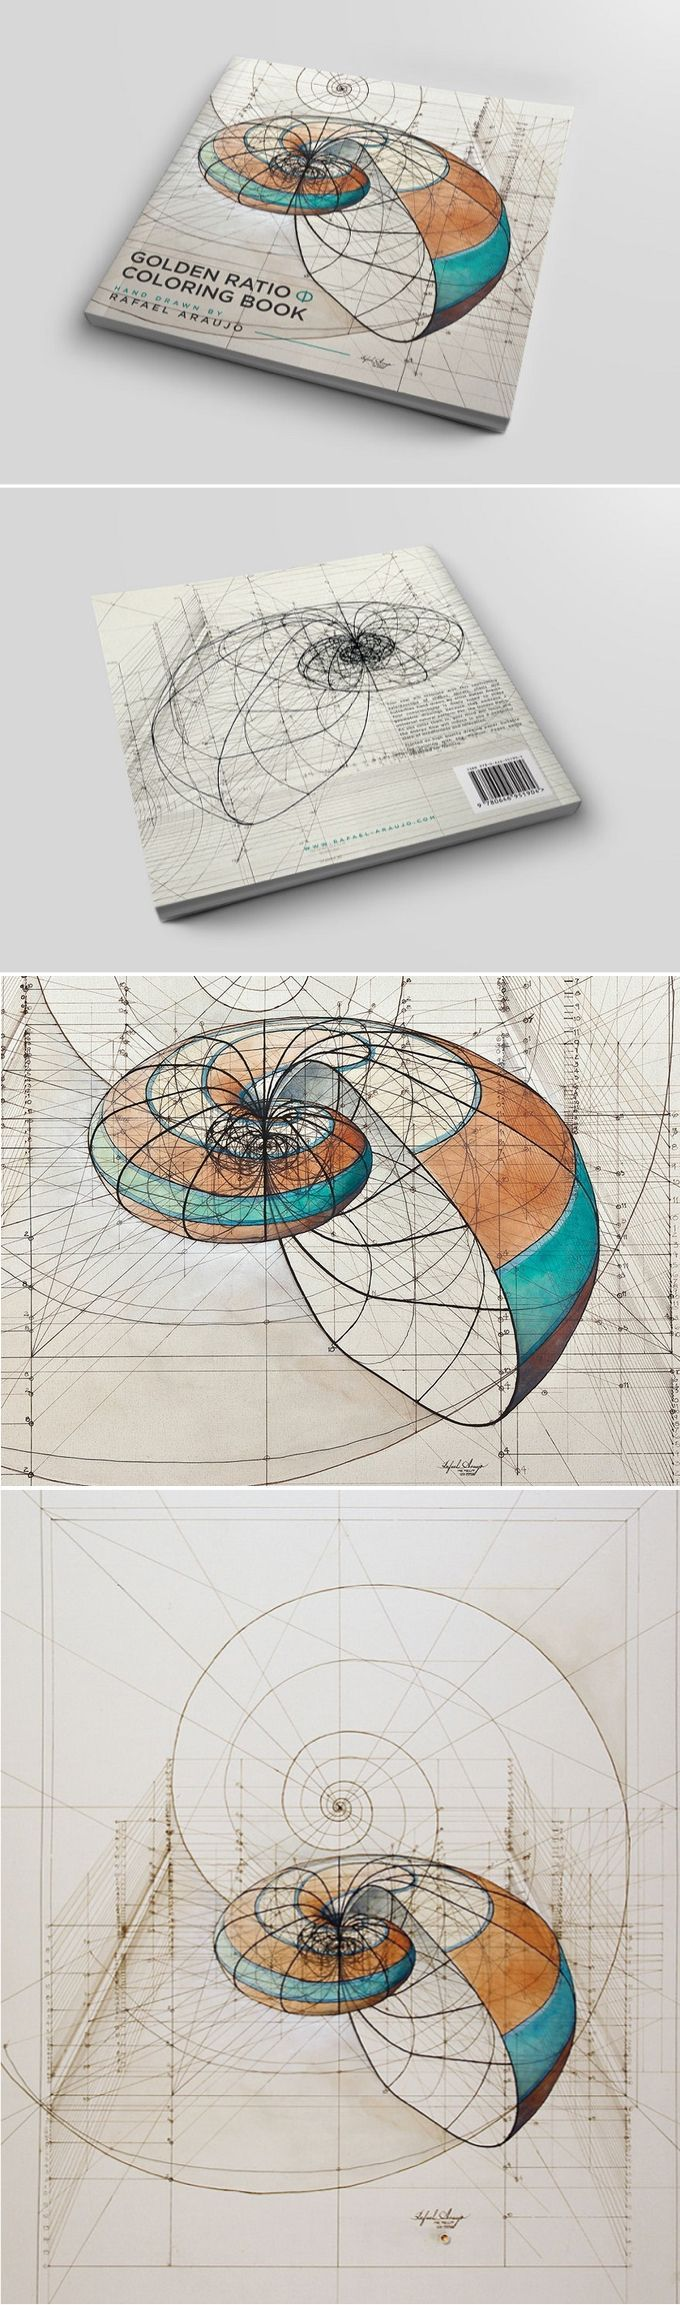 Coloring Book Celebrates Mathematical Beauty Of Nature With Hand Drawn Golden Ratio Illustrations How To Draw Hands Coloring Books Geometric Art